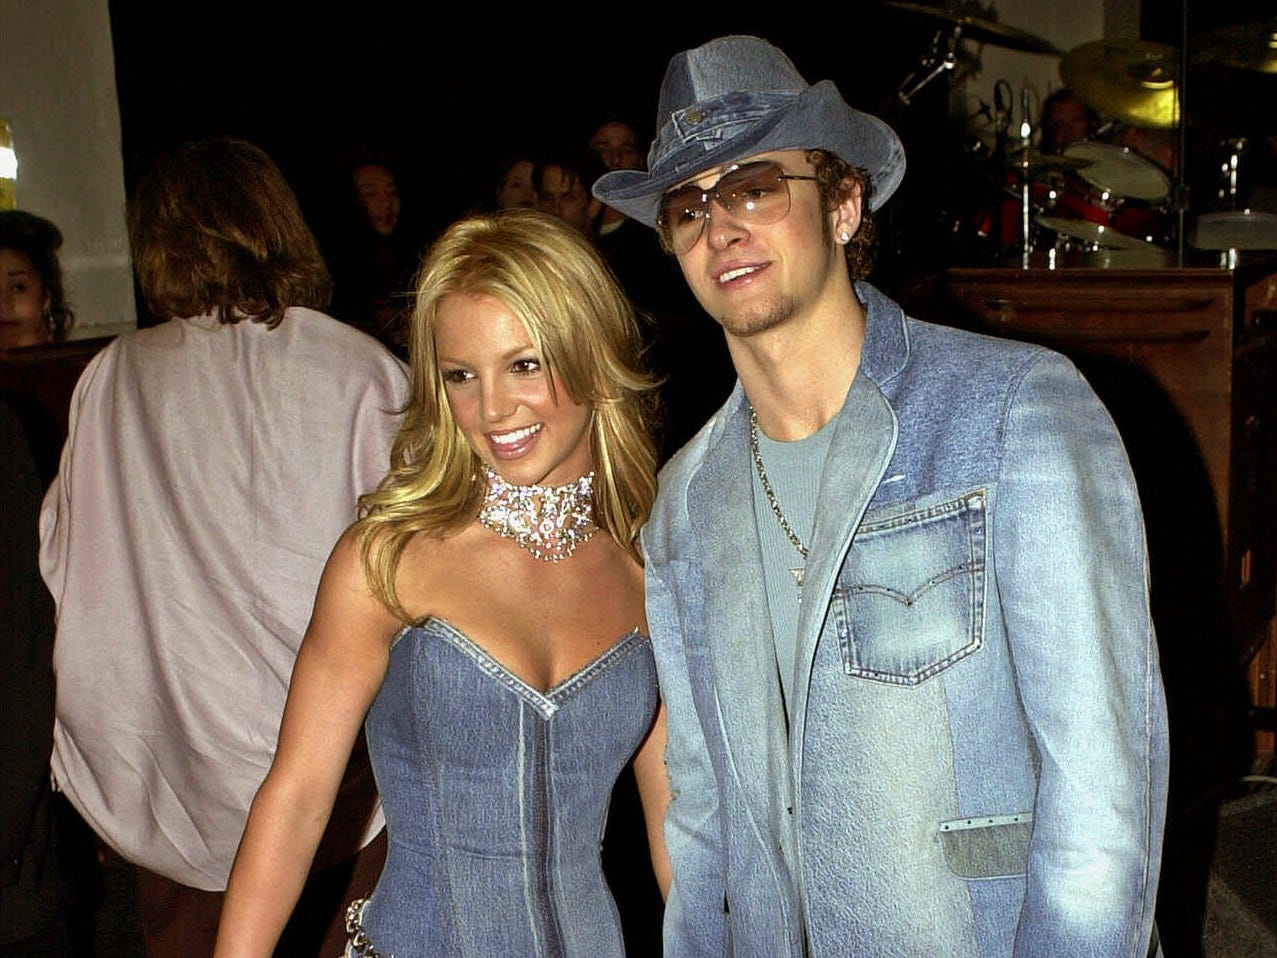 Show host Britney Spears, left, and Justin Timberlake of N'Sync arrive at the 28th Annual American Music Awards in Los Angeles Monday, Jan. 8, 2001. (AP Photo/Mark J. Terrill) ORG XMIT: XAMA104